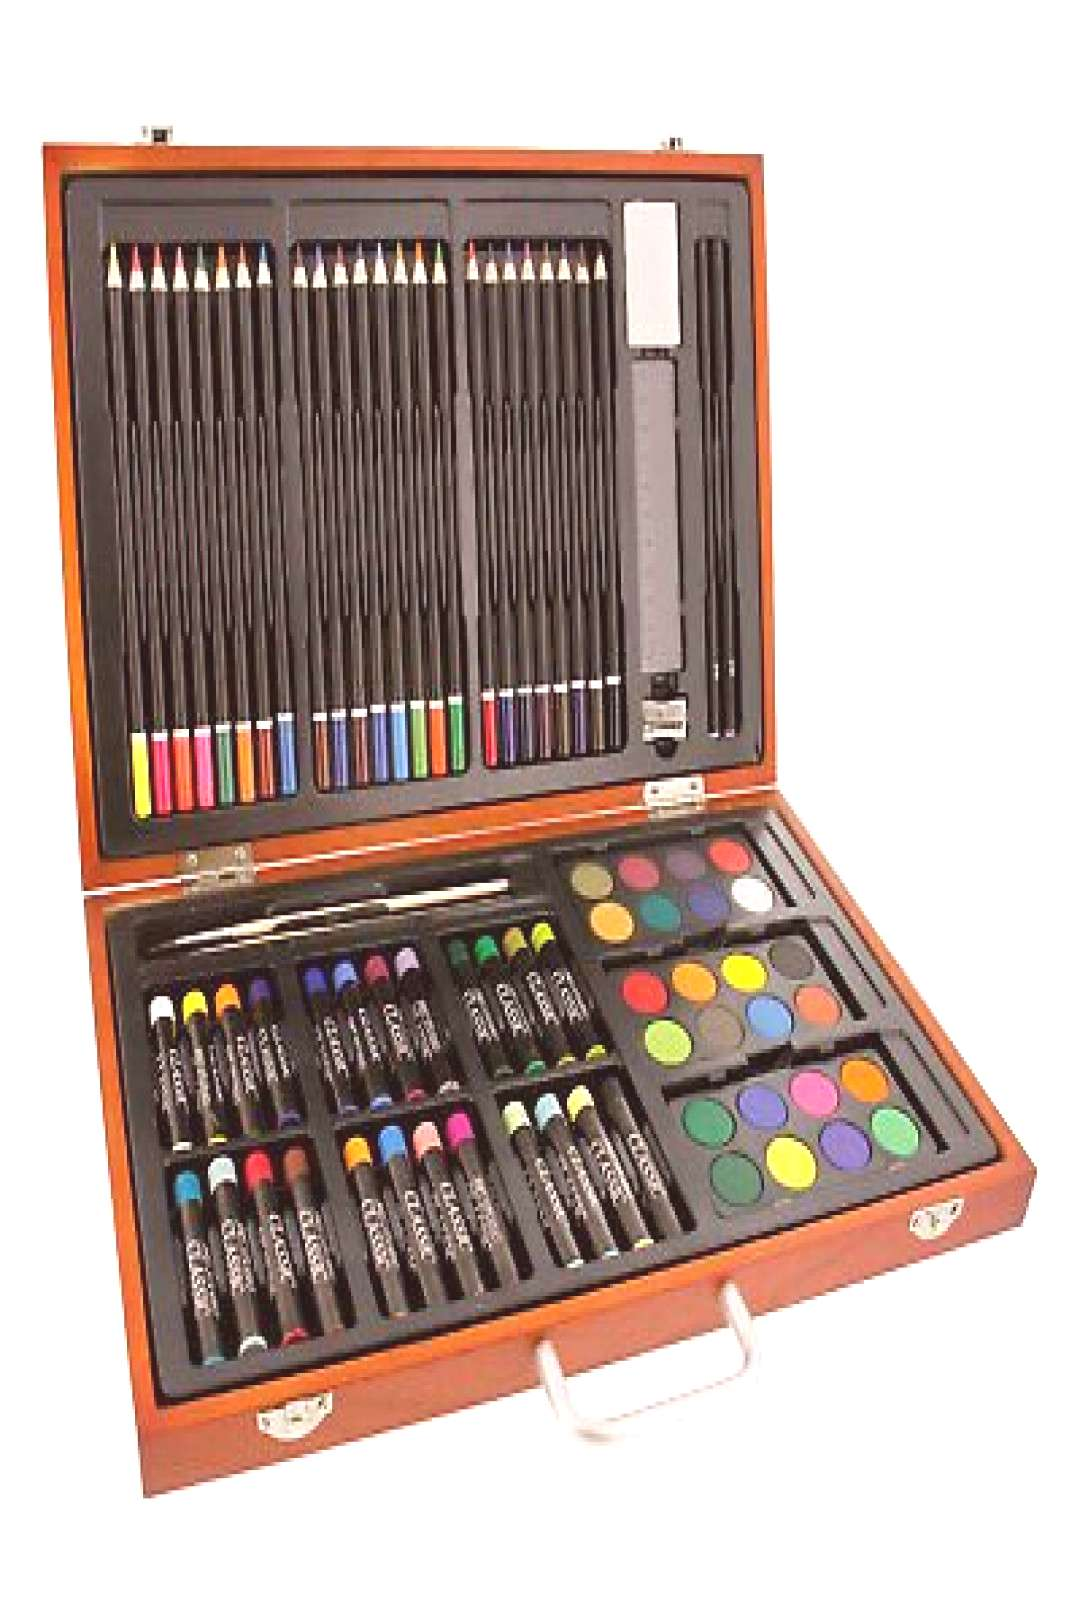 US Art Supply 82 Piece Deluxe Artist Studio Creative Wood Box Set Colored Pencil